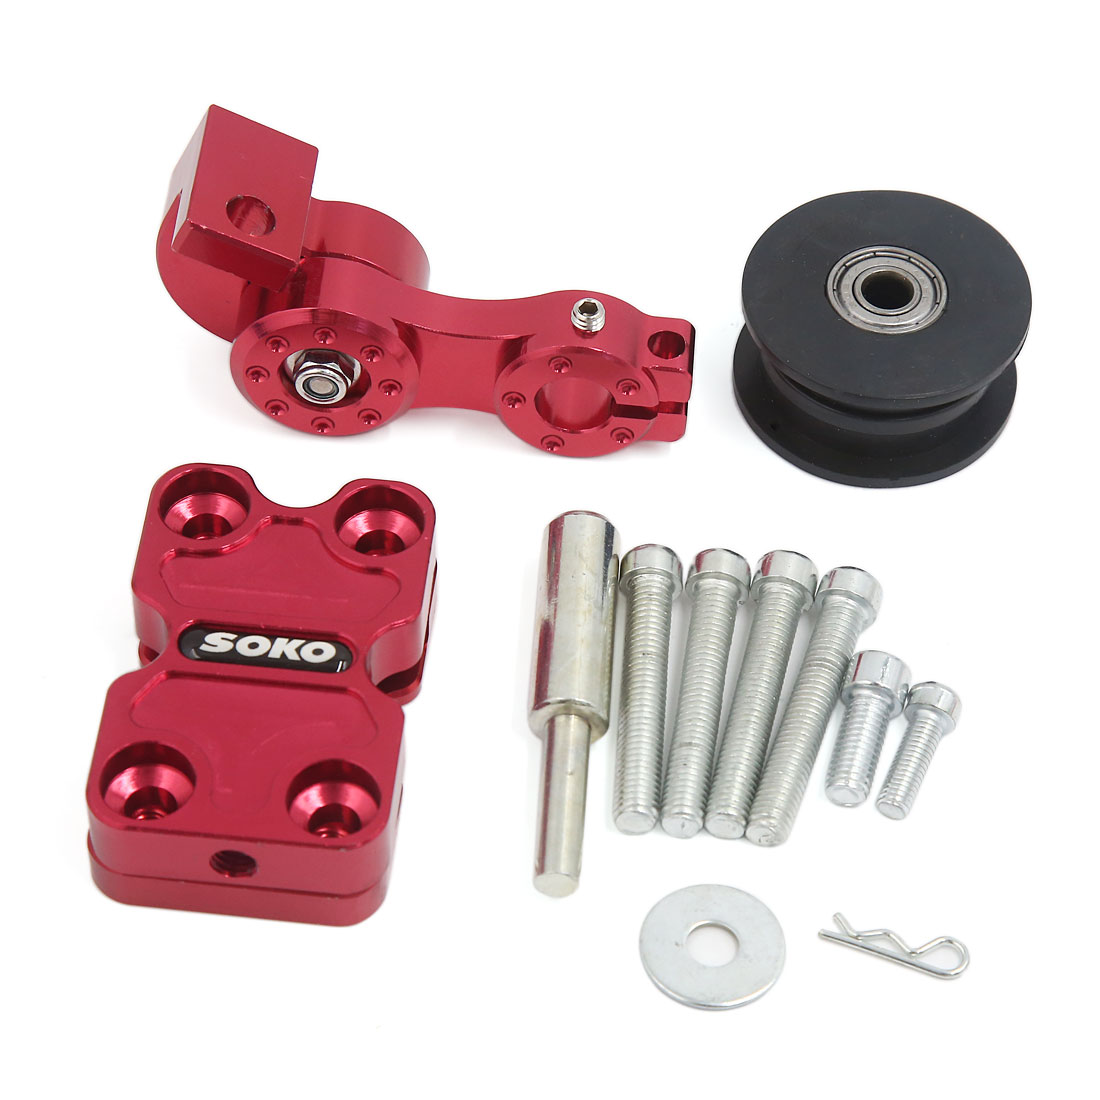 Red Color Aluminum Alloy CNC Chain Tensioner Adjuster Tool for Motorcycle